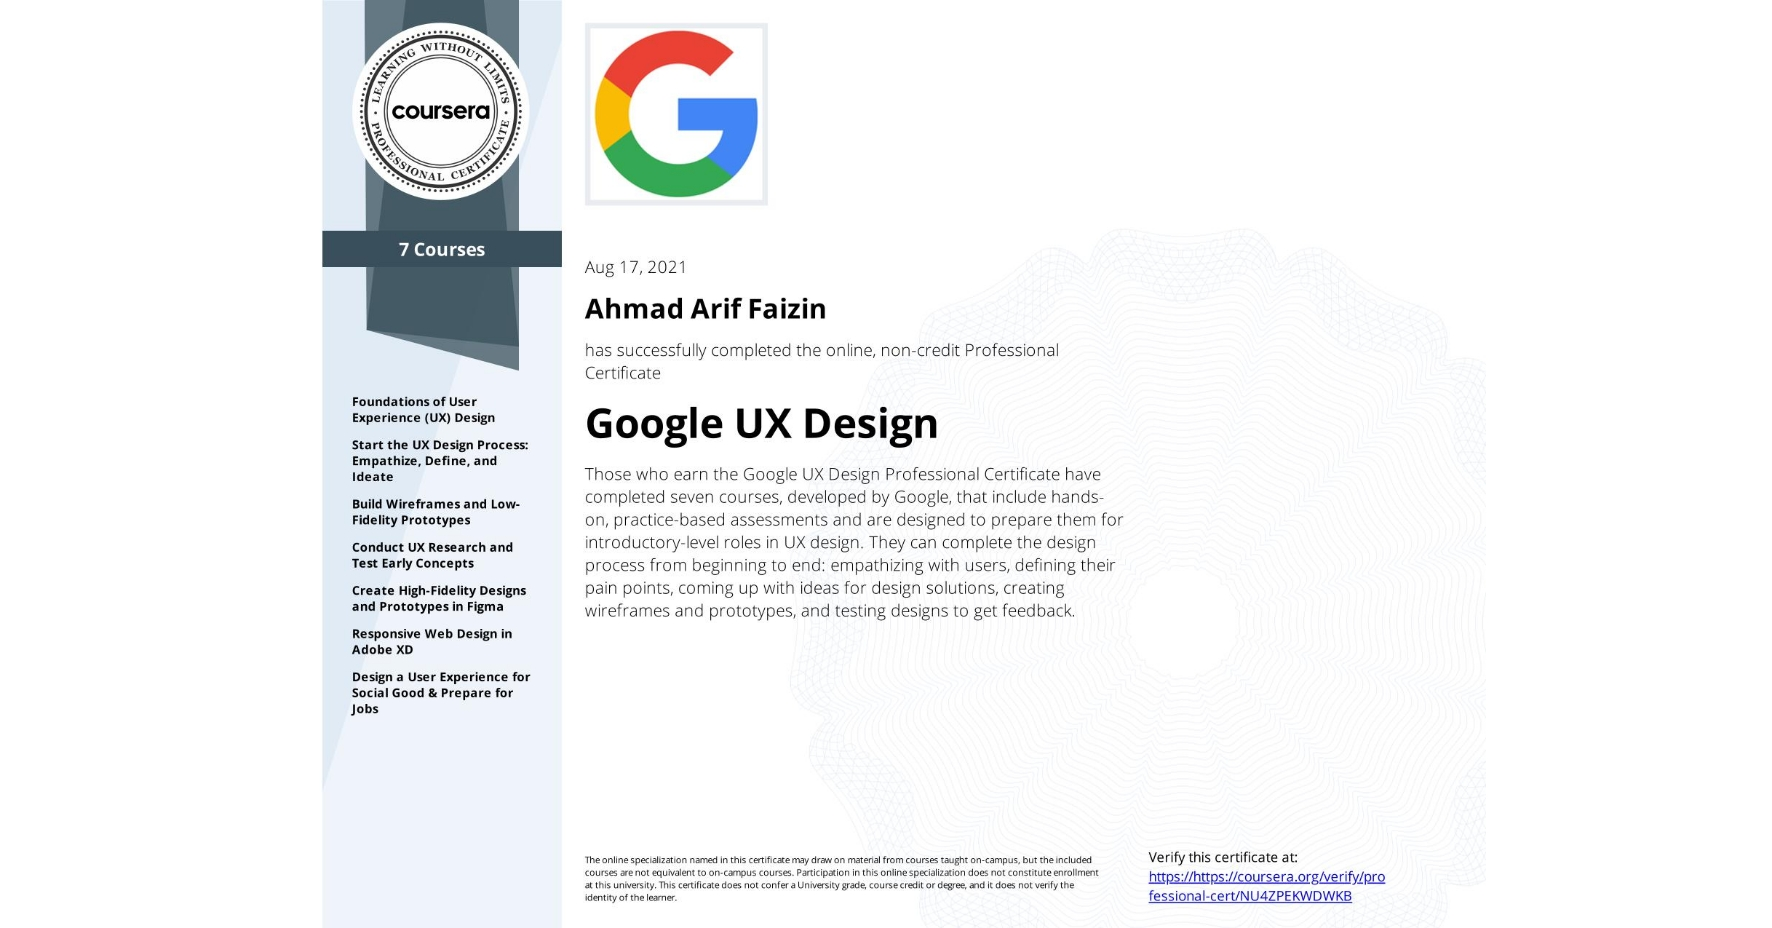 View certificate for Ahmad Arif Faizin, Google UX Design, offered through Coursera. Those who earn the Google UX Design Professional Certificate have completed seven courses, developed by Google, that include hands-on, practice-based assessments and are designed to prepare them for introductory-level roles in UX design. They can complete the design process from beginning to end: empathizing with users, defining their pain points, coming up with ideas for design solutions, creating wireframes and prototypes, and testing designs to get feedback.